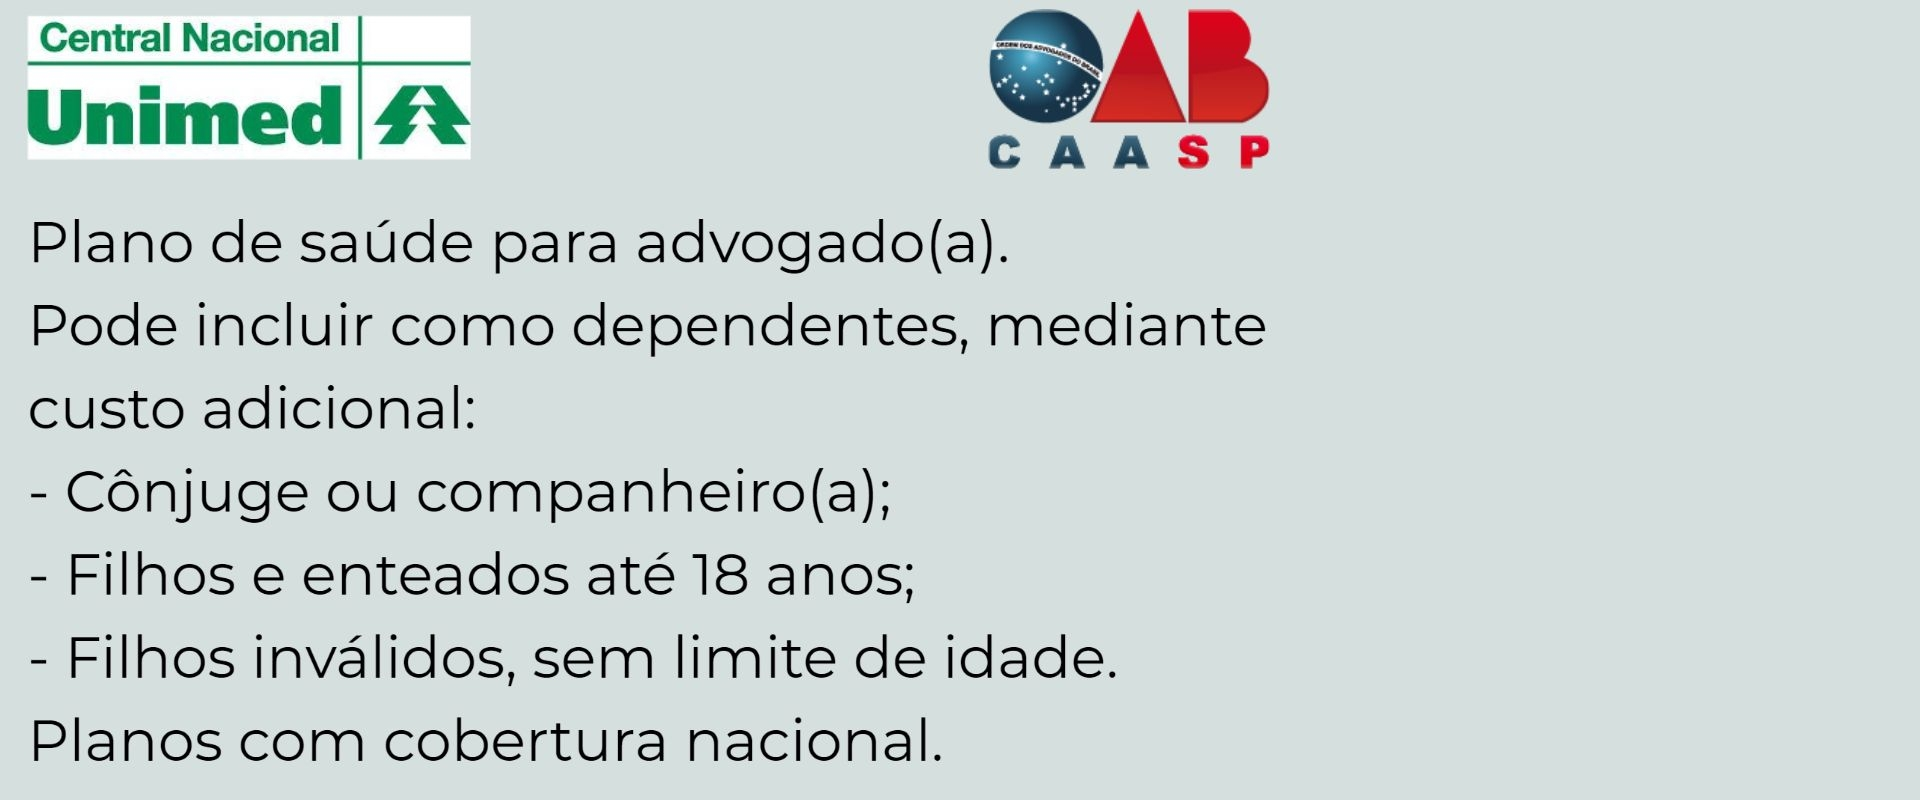 Unimed CAASP Barretos